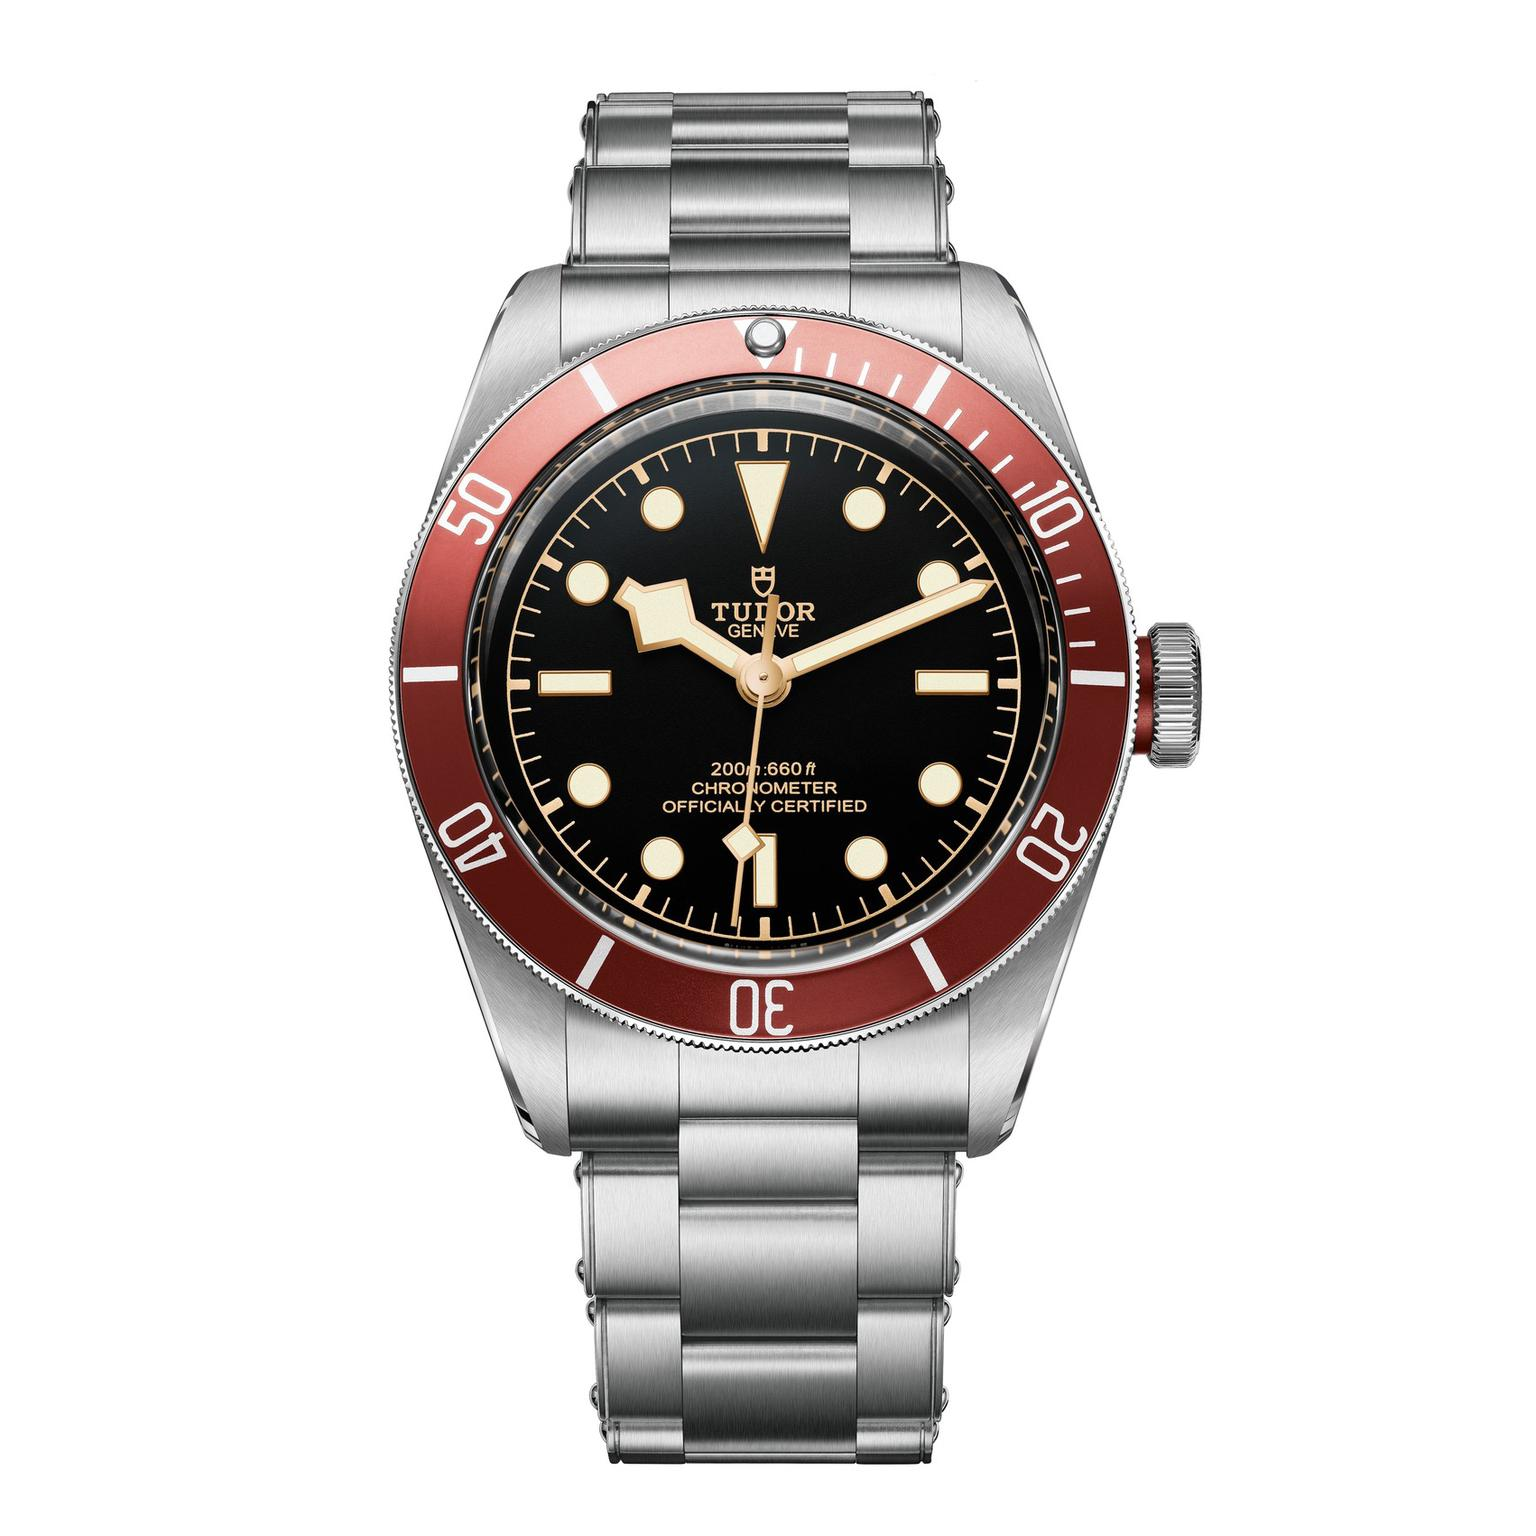 Tudor Heritage Black Bay watch with stainless steel bracelet